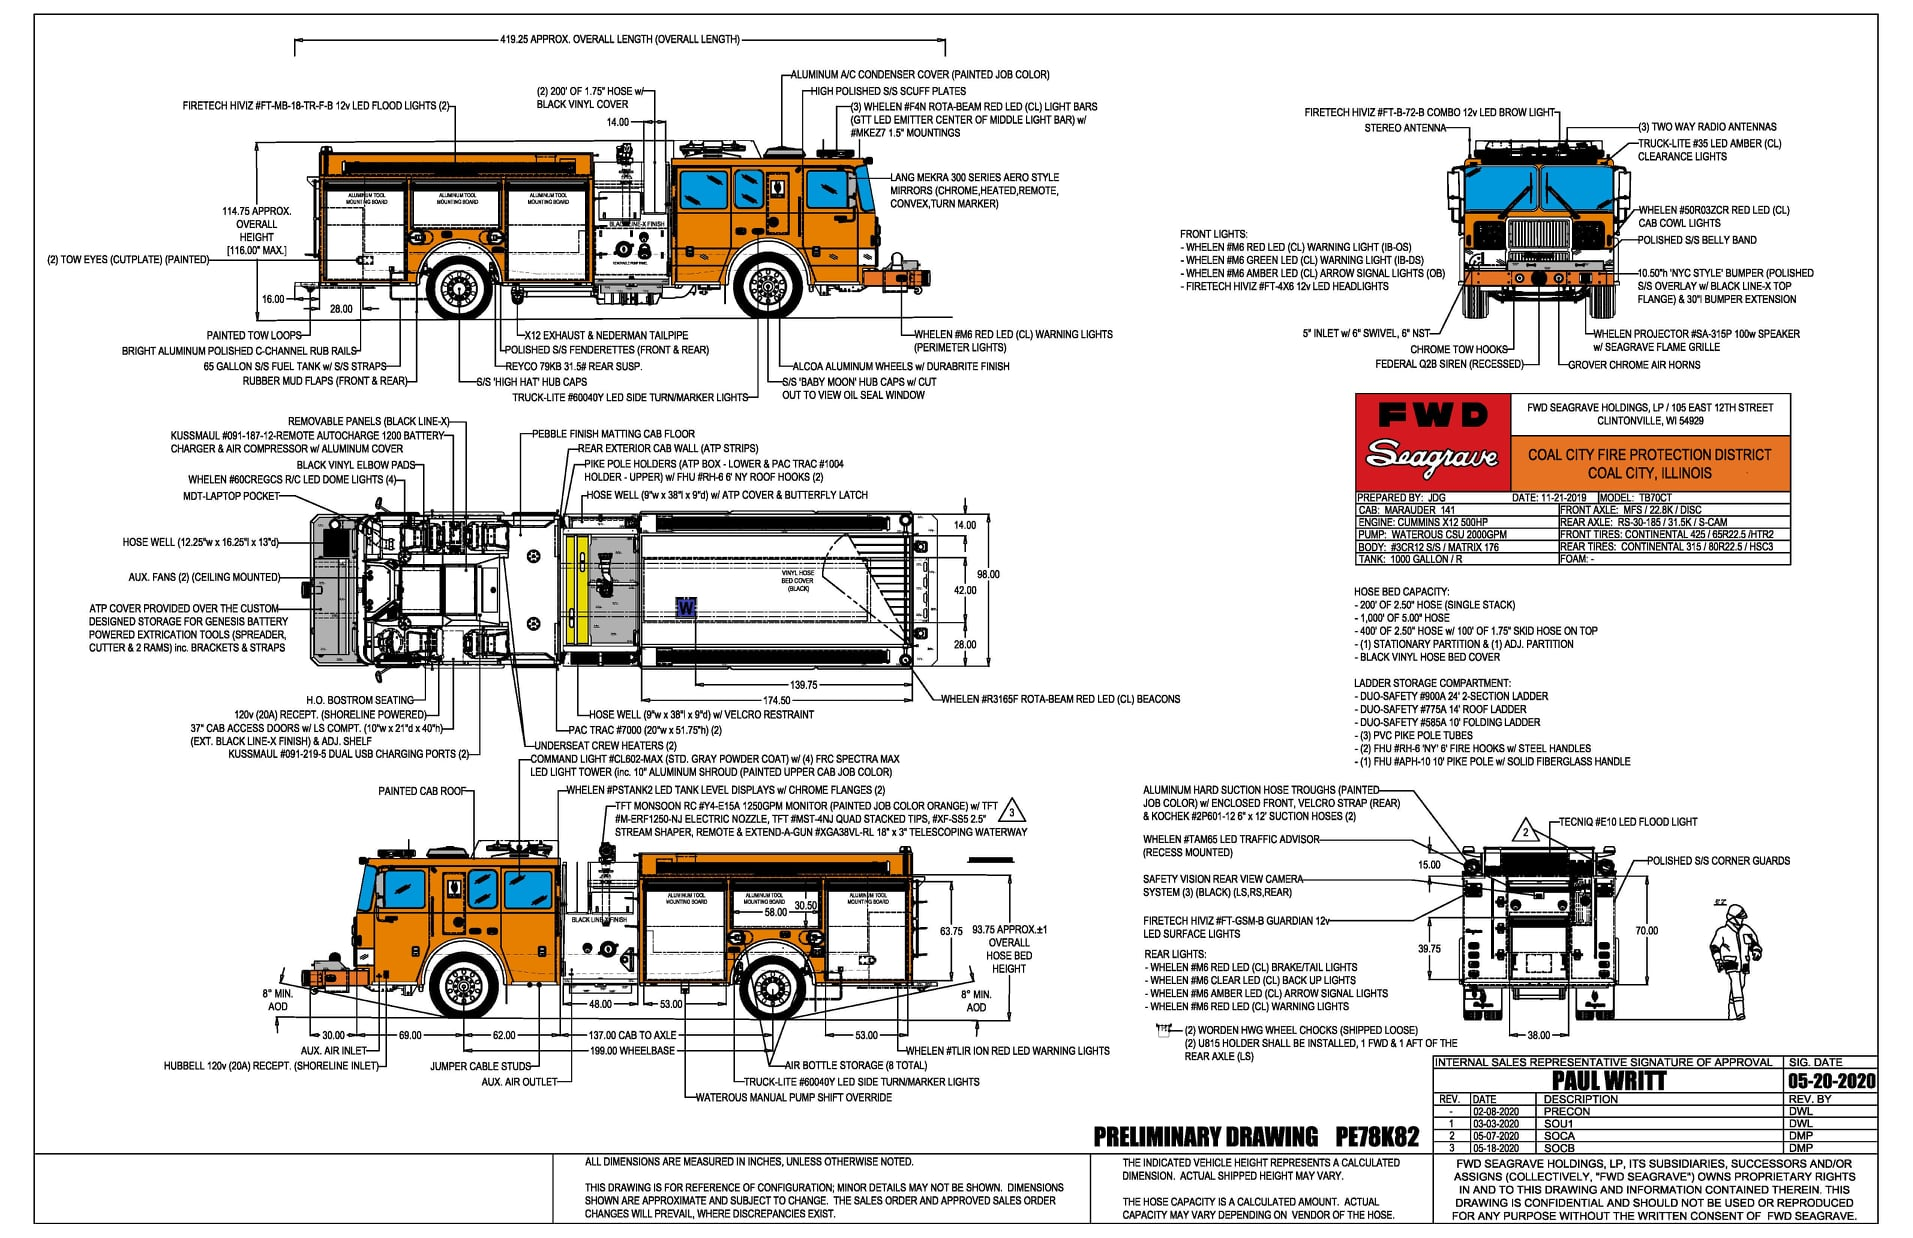 drawing of Seagrave Marauder fire engine for the Coal City Fire Protection District